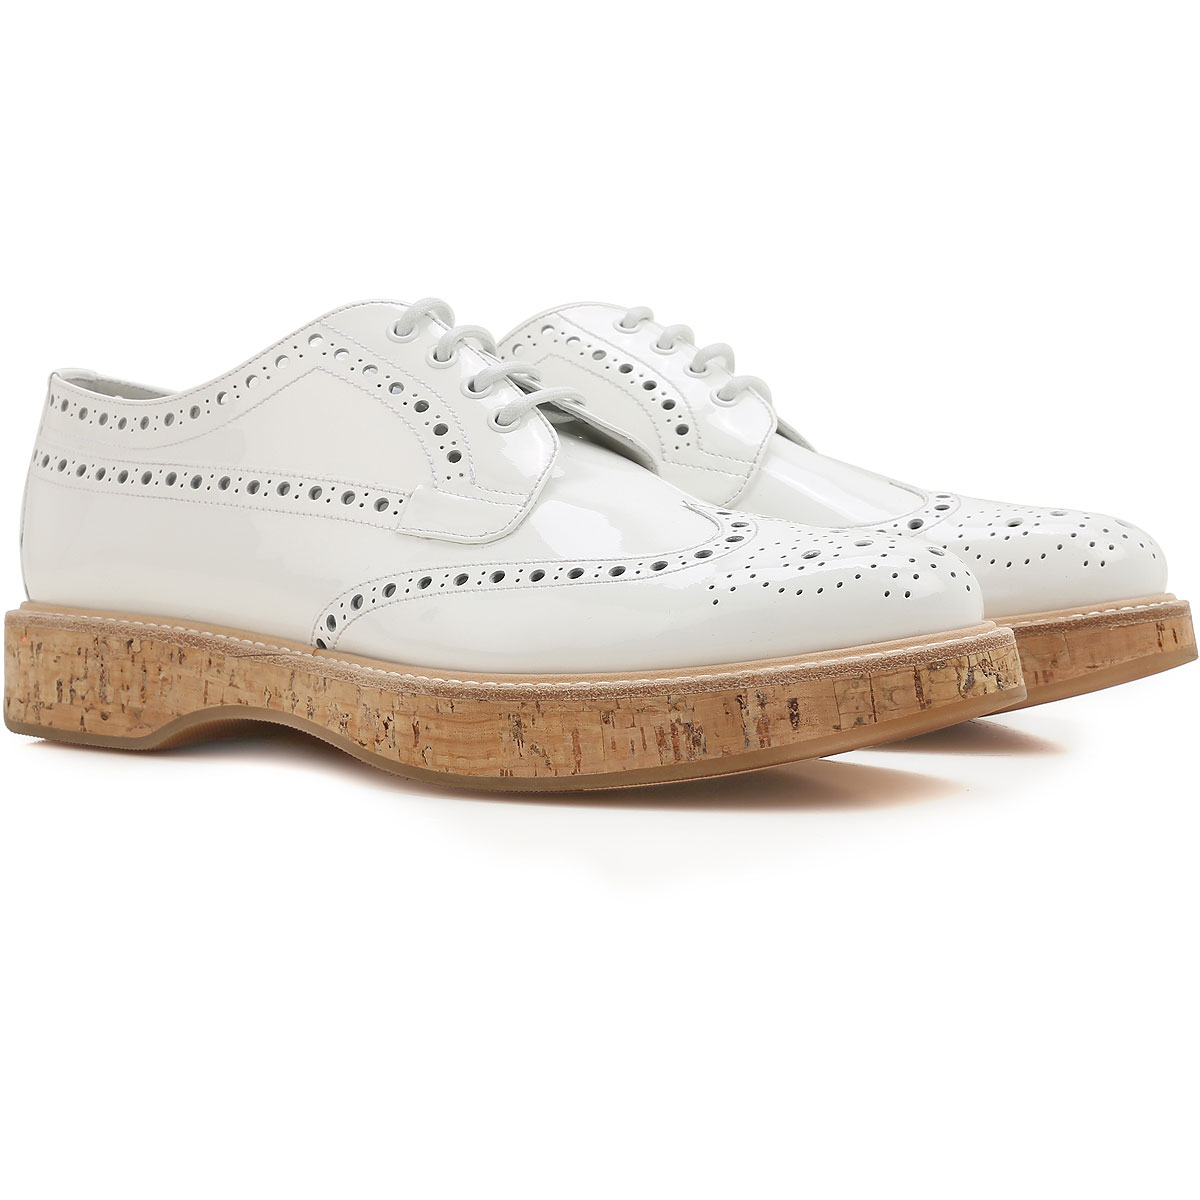 Image of Church's Oxford Lace up Shoes for Women On Sale in Outlet, White, Patent Leather, 2017, 10 8 8.5 9